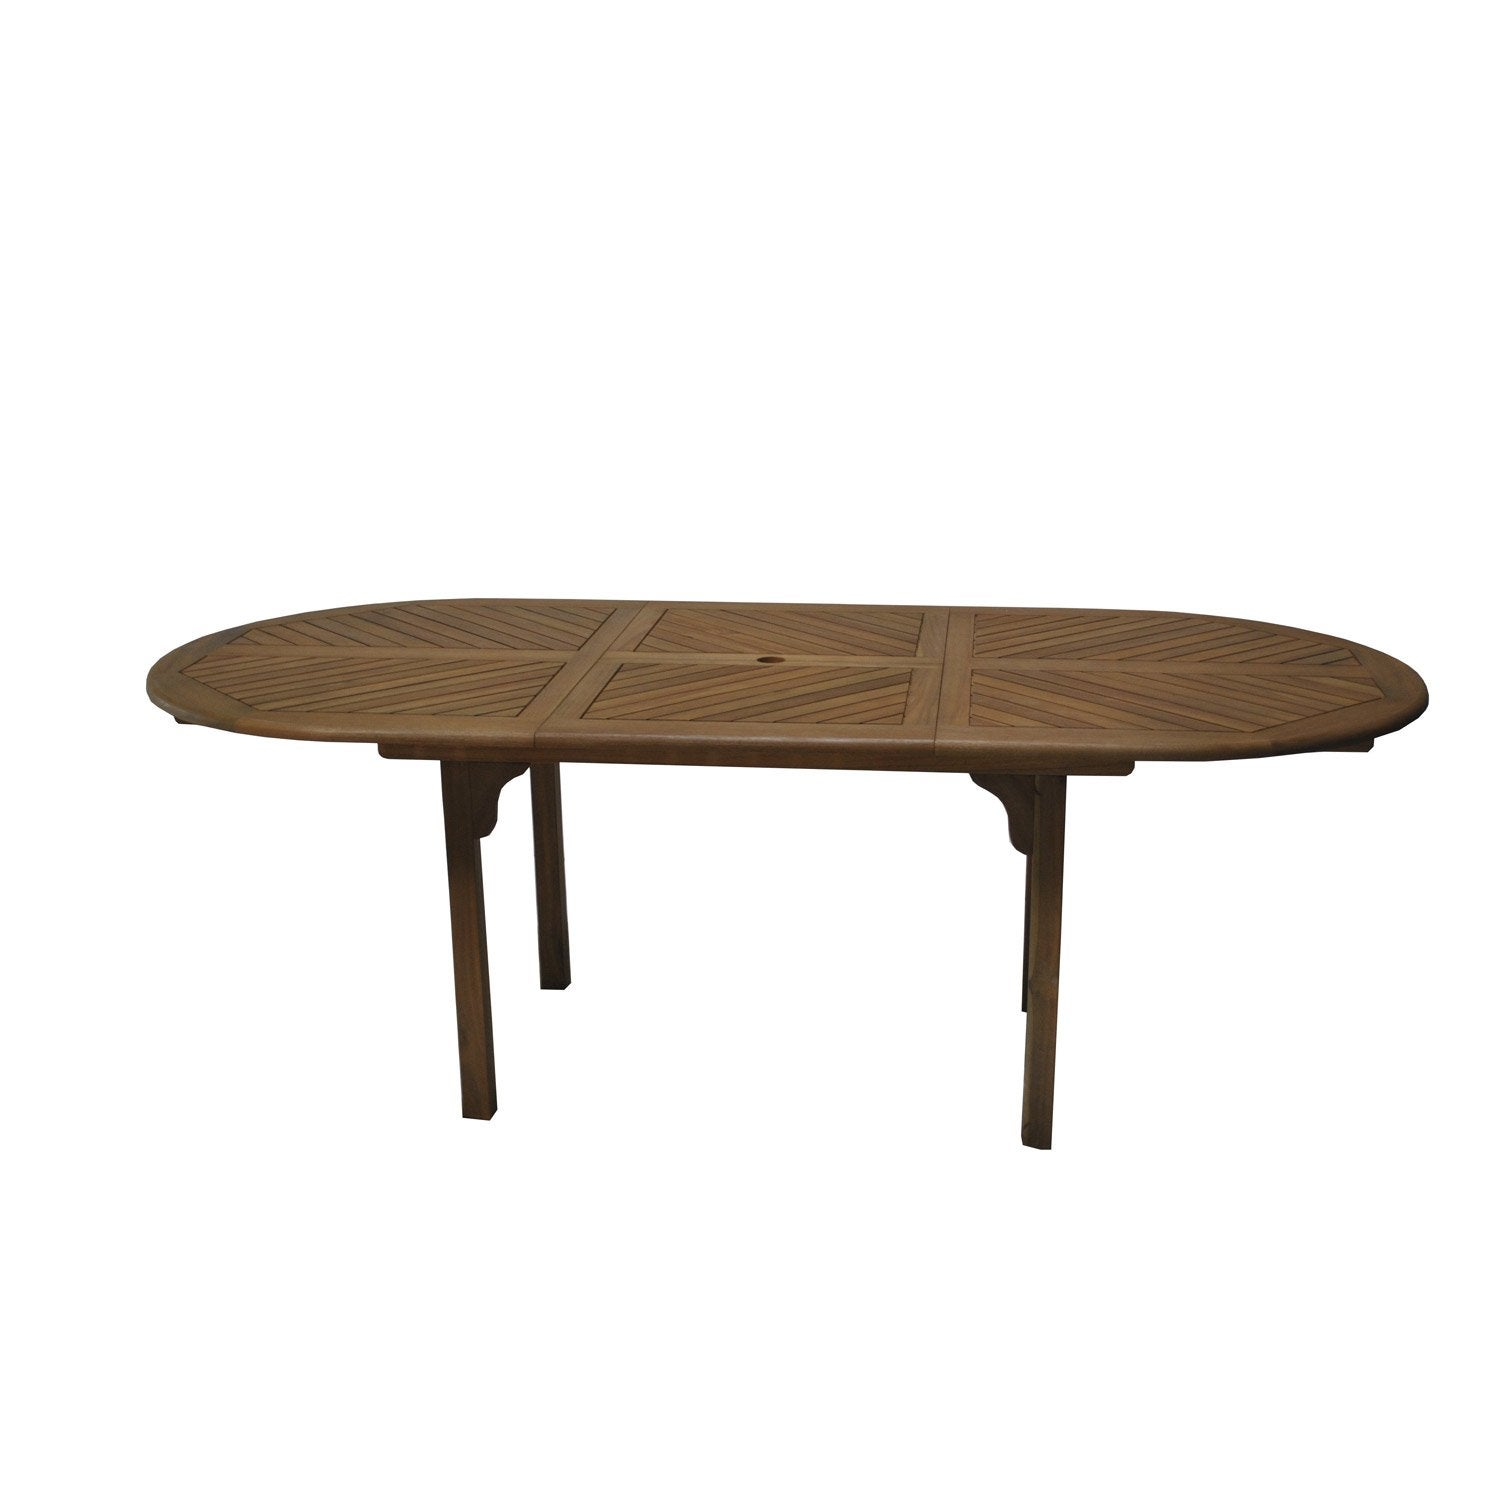 Table basse teck leroy merlin - Meuble de jardin leroy merlin ...